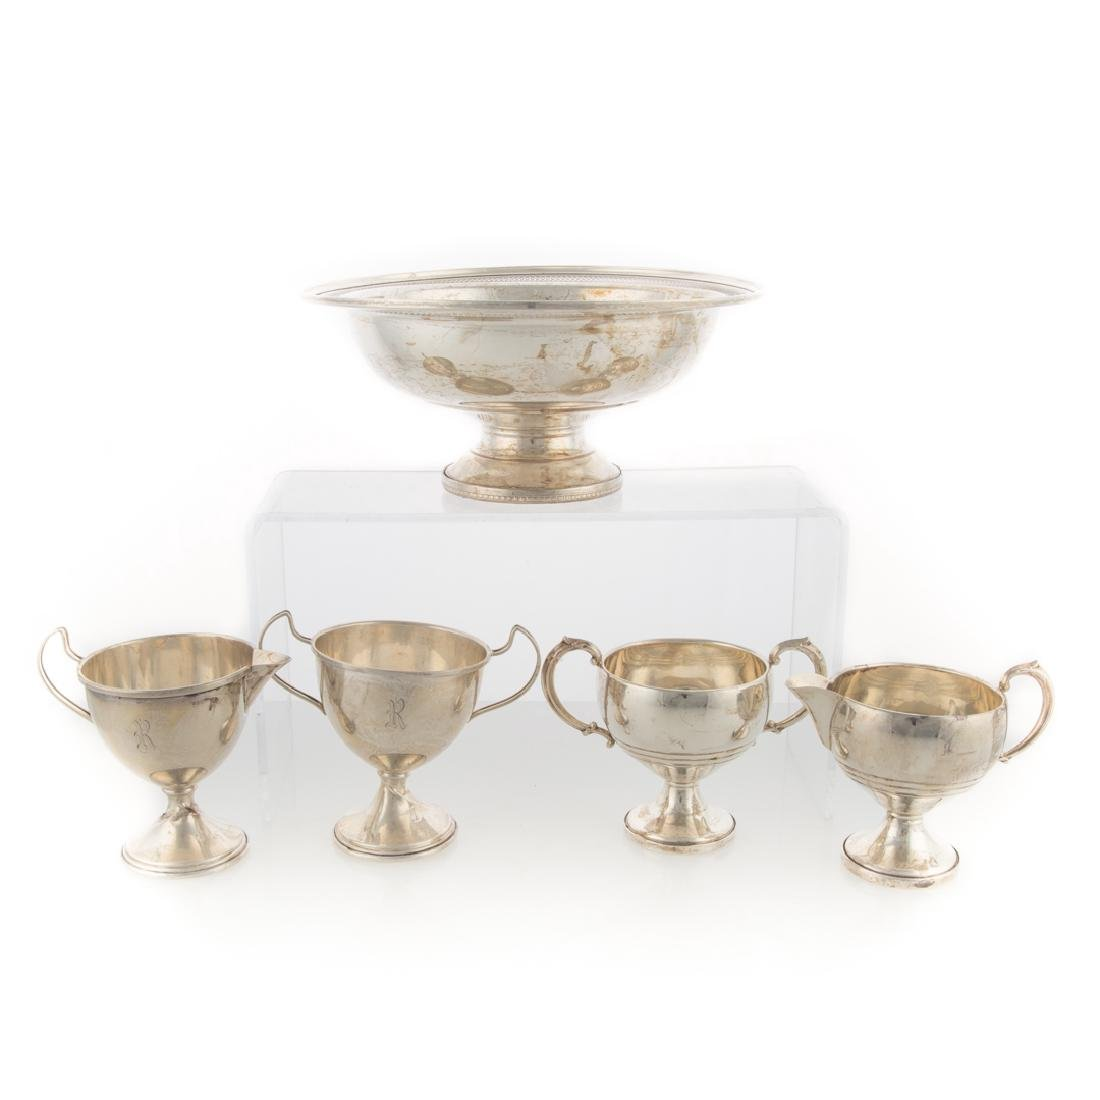 Group of weighted sterling silver table articles